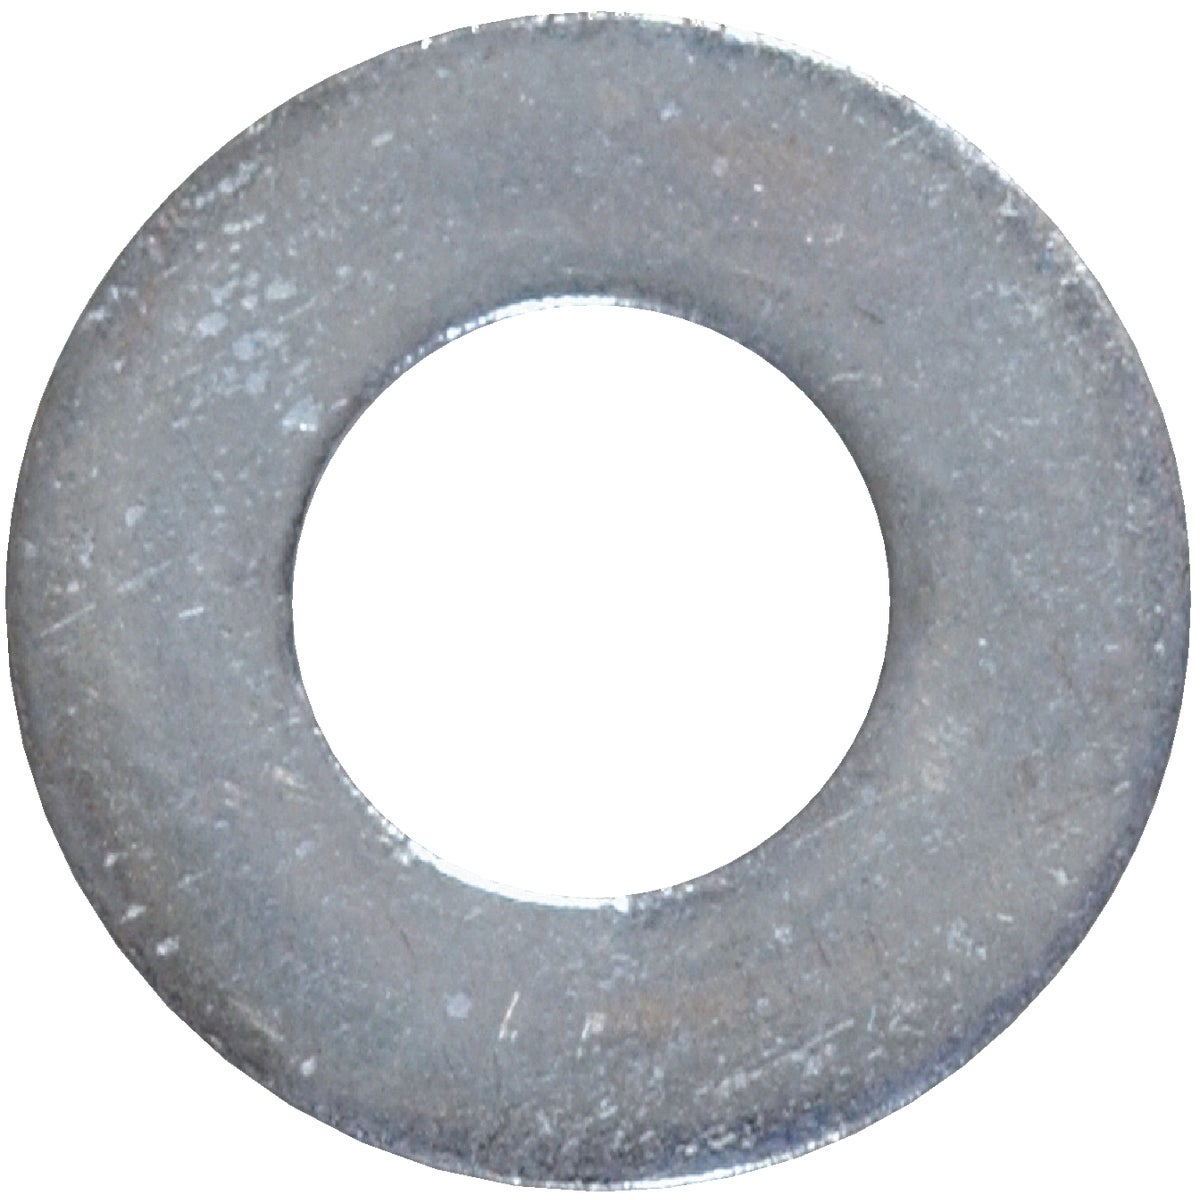 "3/8"" USS FLAT WASHER - 811072 by Hillman Fastener"